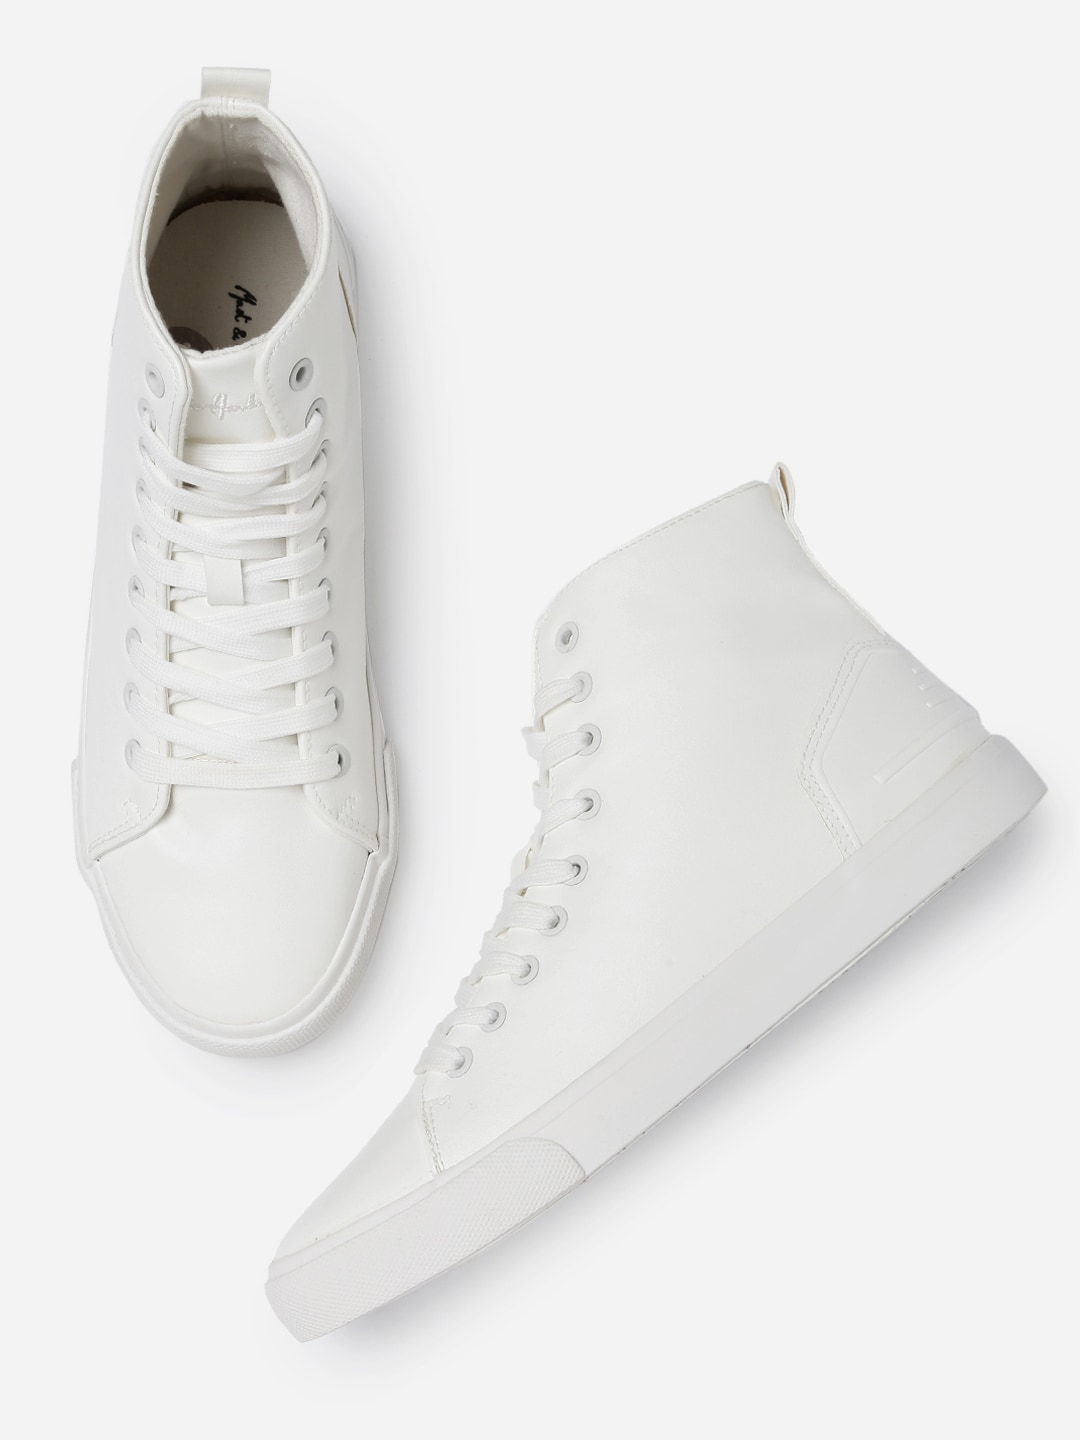 quality design 35b0e 34852 High Top Shoes - Buy High Top Shoes online in India